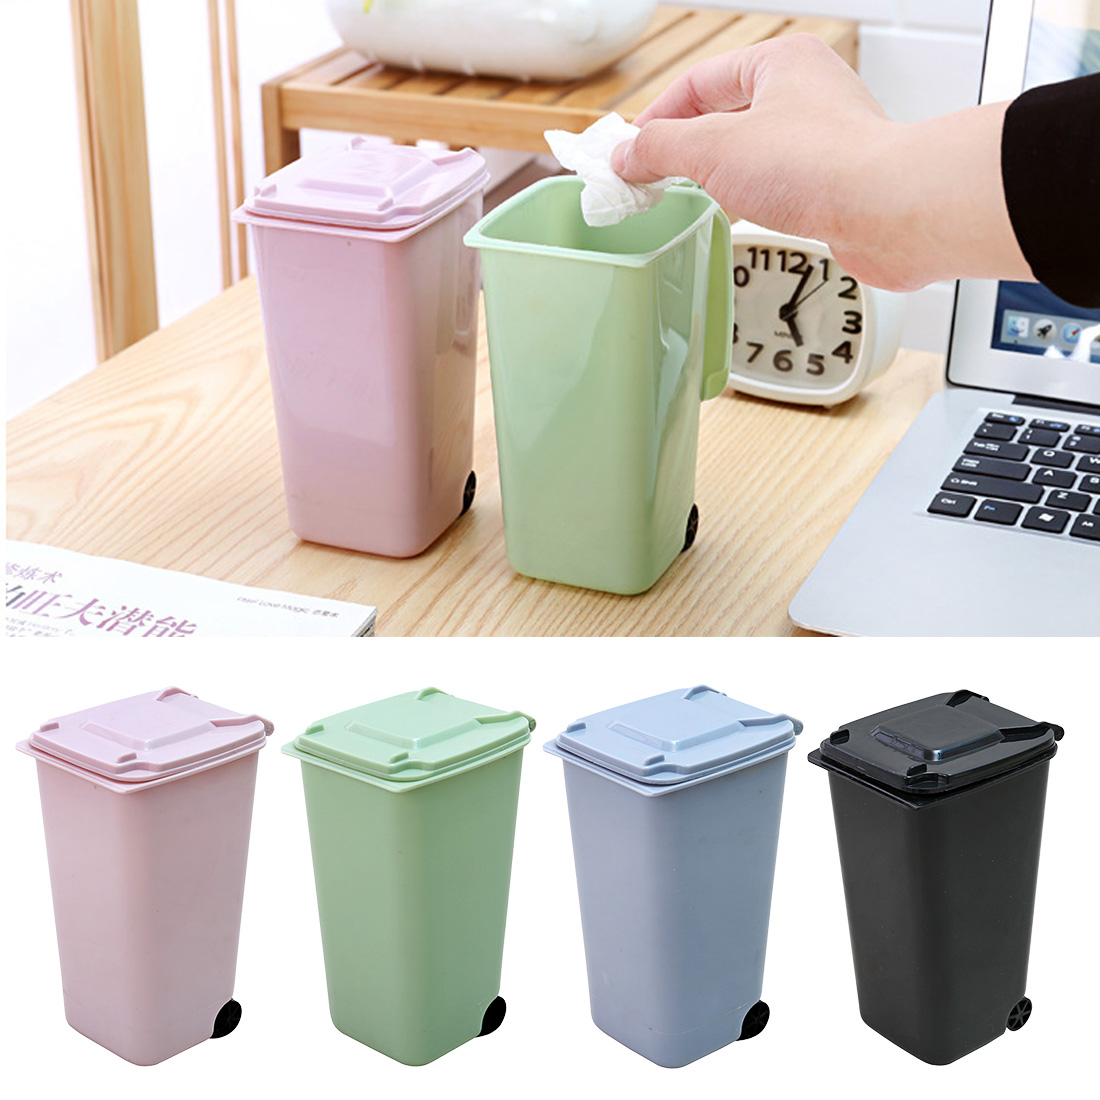 Small Kitchen Trash Cans Us 1 43 5 Off Trash Can Creative Mini Desktop Plastic Bucket Bin Kitchen Household Office Supplies Small Trash Bin For Small Scissors Pencil In